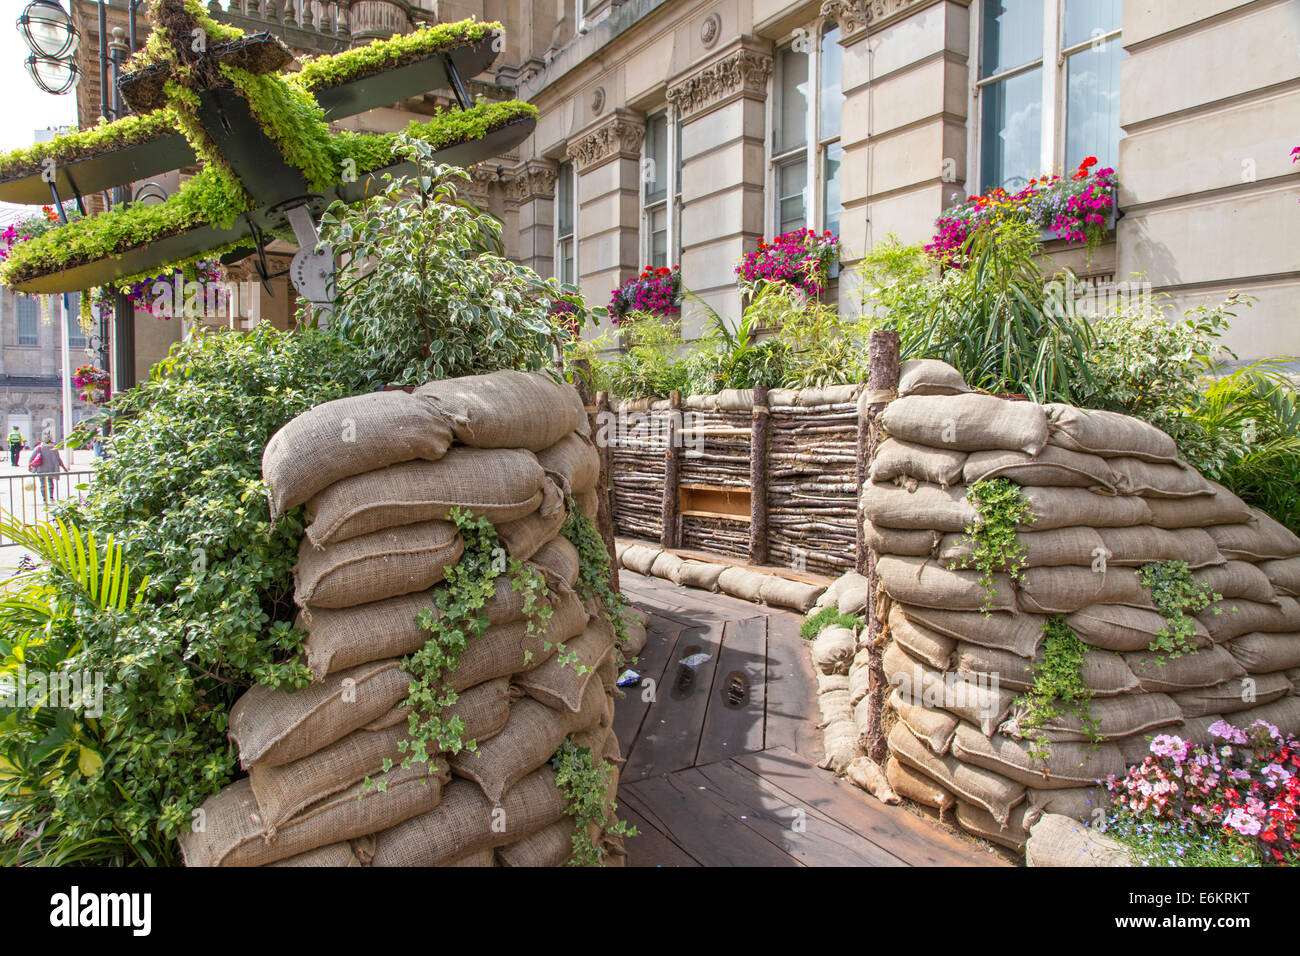 re-construction of a First World War trench, to mark the 100th anniversary, Birmingham, England, UK - Stock Image